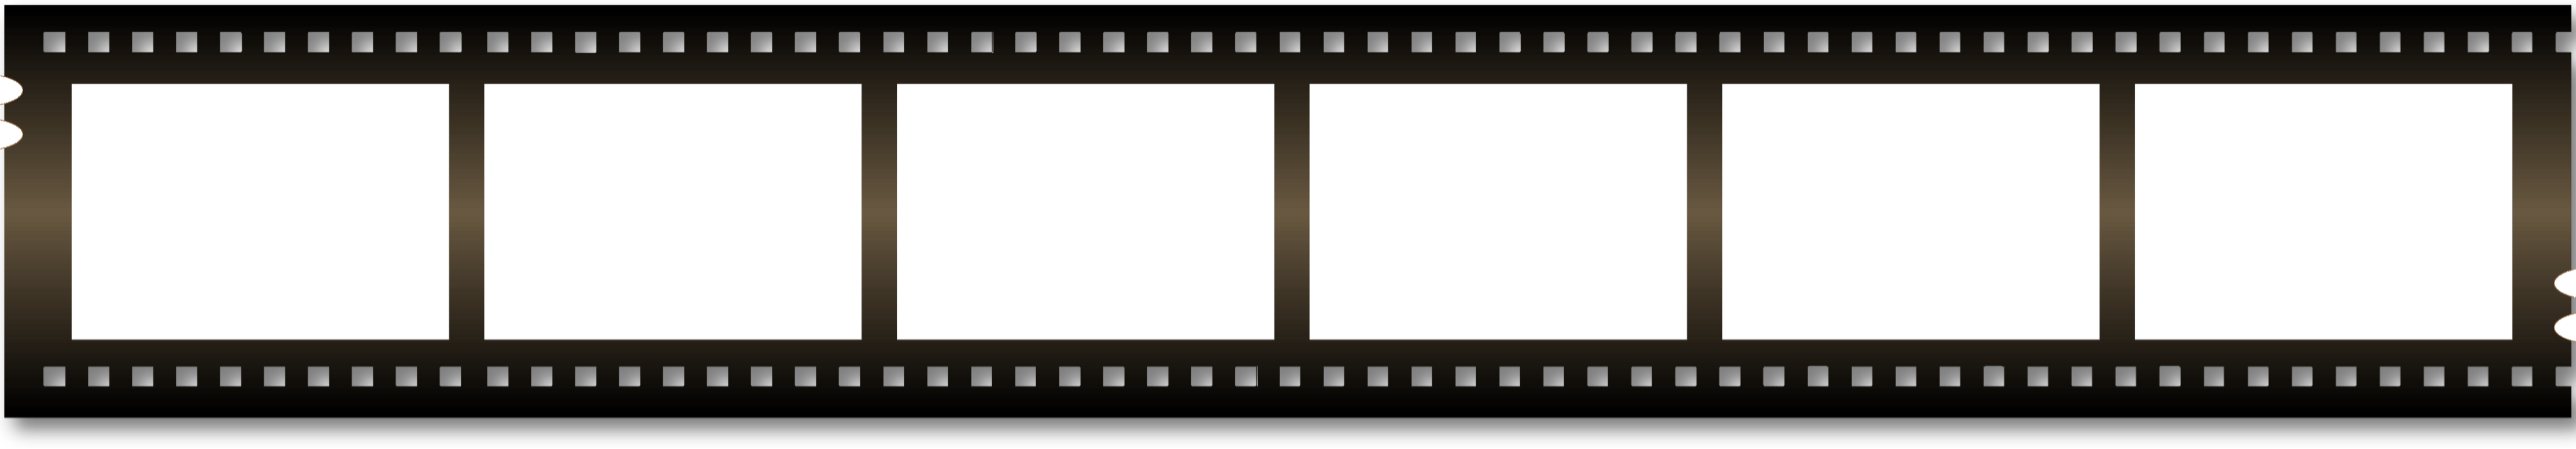 Film strip clip art and on.